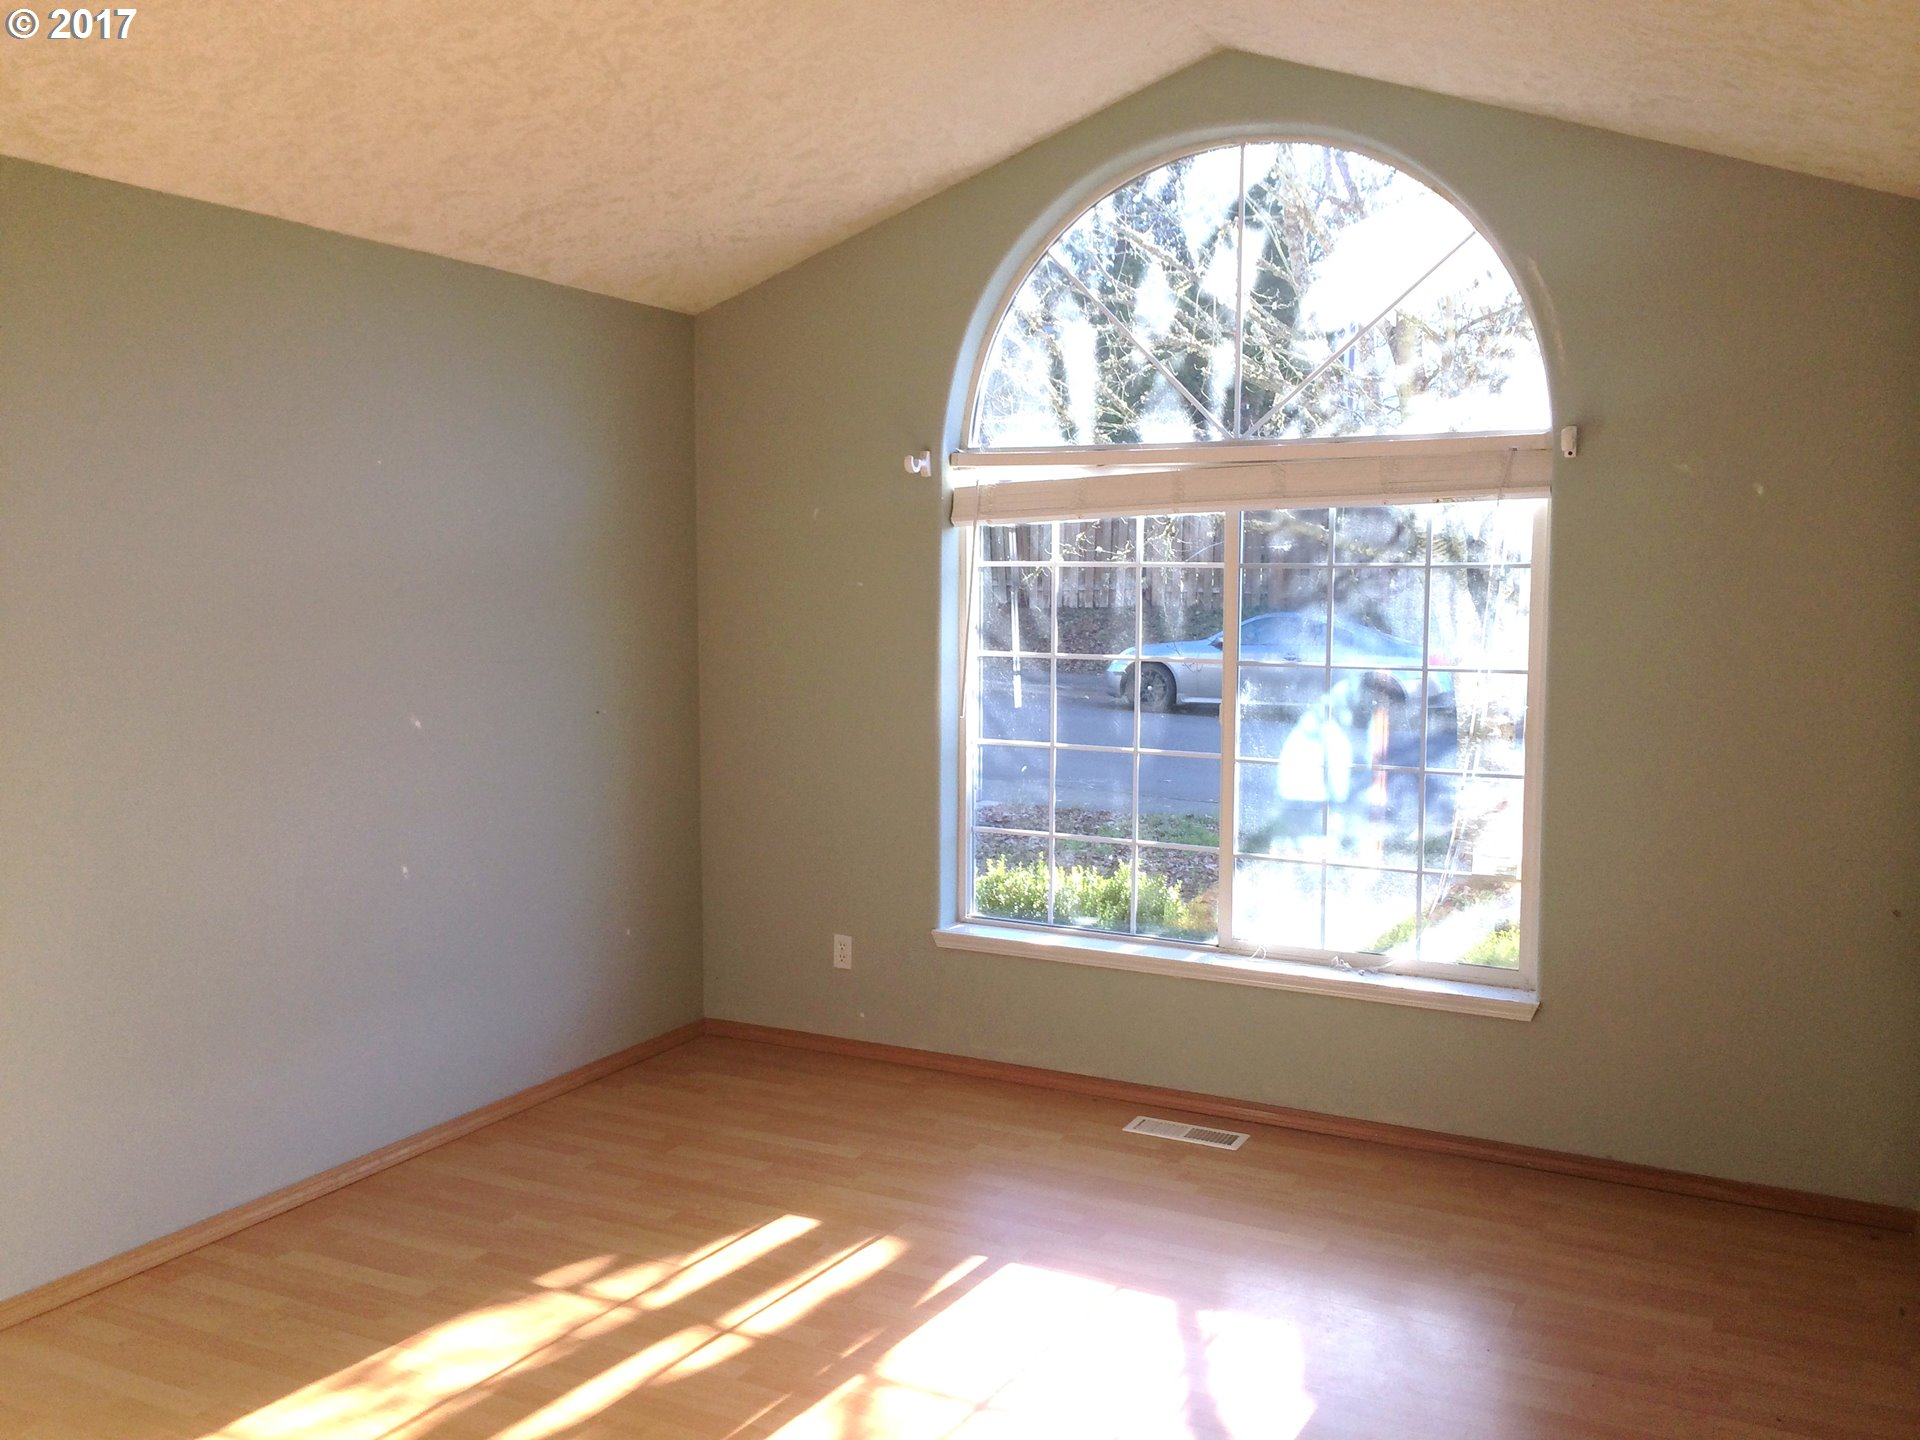 1547 sq. ft 3 bedrooms 2 bathrooms  House ,Portland, OR